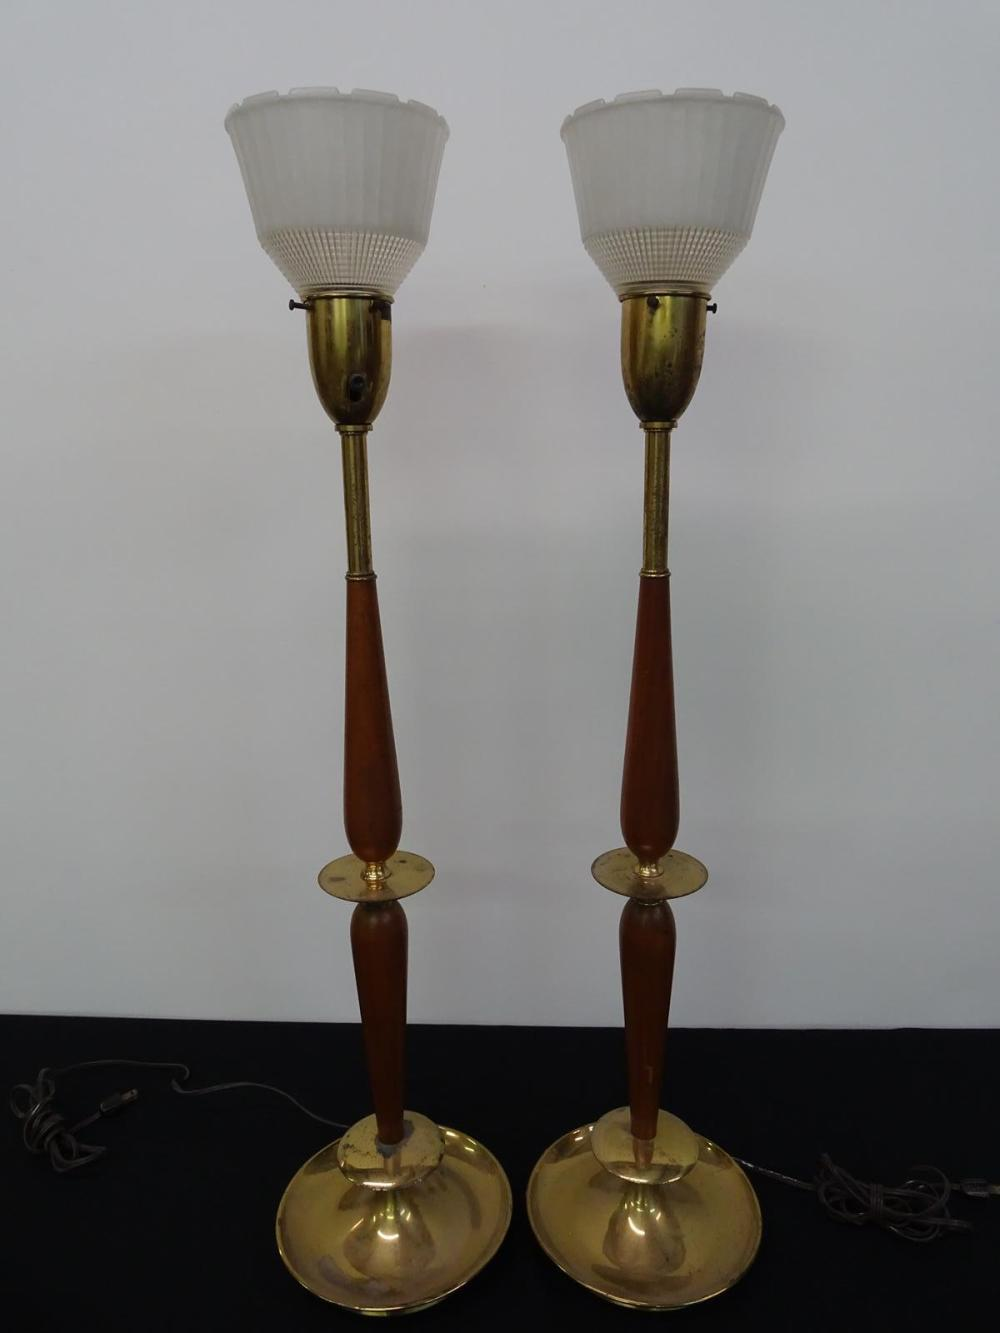 PAIR OF REMBRANDT TABLE TORCHERE LAMPS